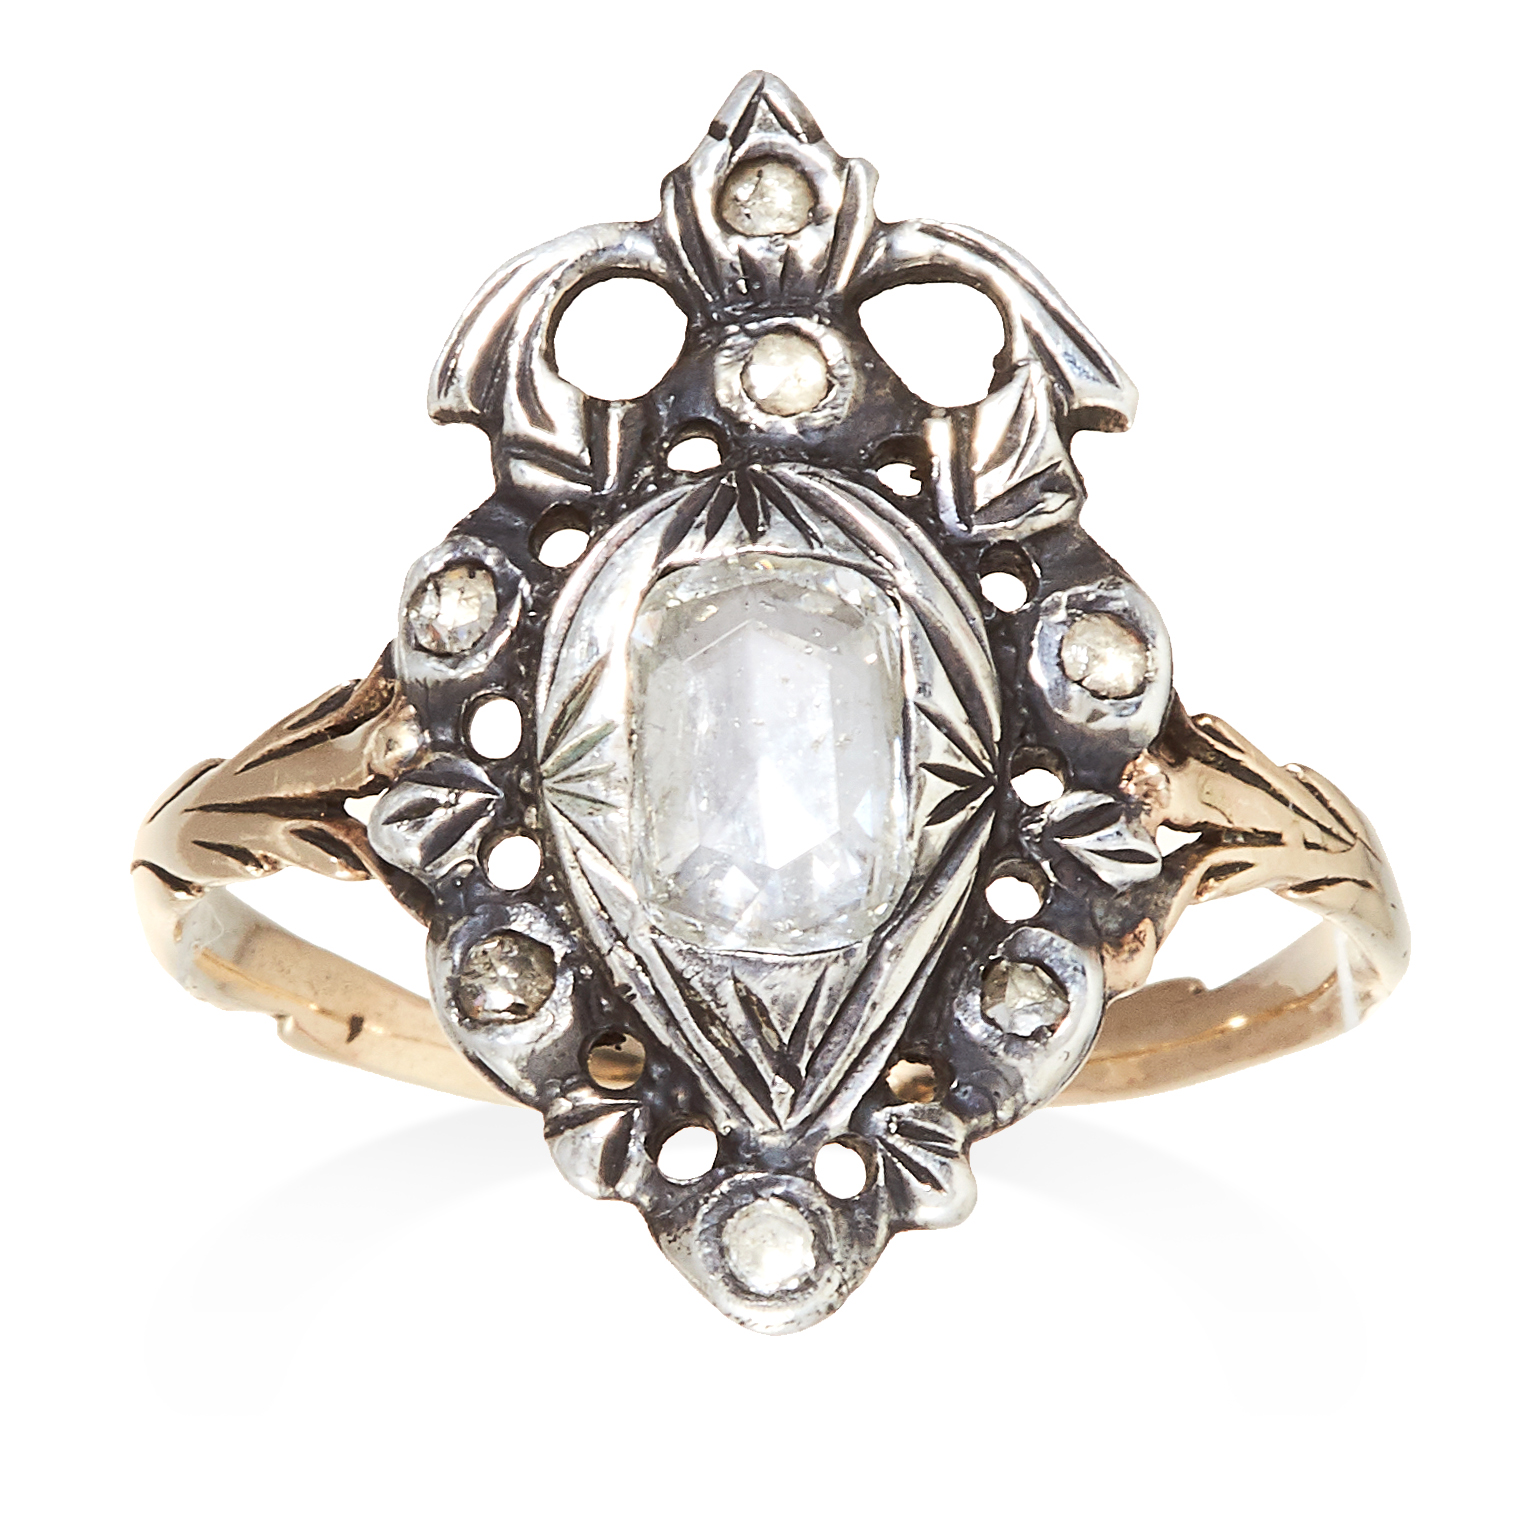 Los 35 - AN ANTIQUE DIAMOND RING, EARLY 19TH CENTURY in yellow gold and silver, set with rose cut diamonds,